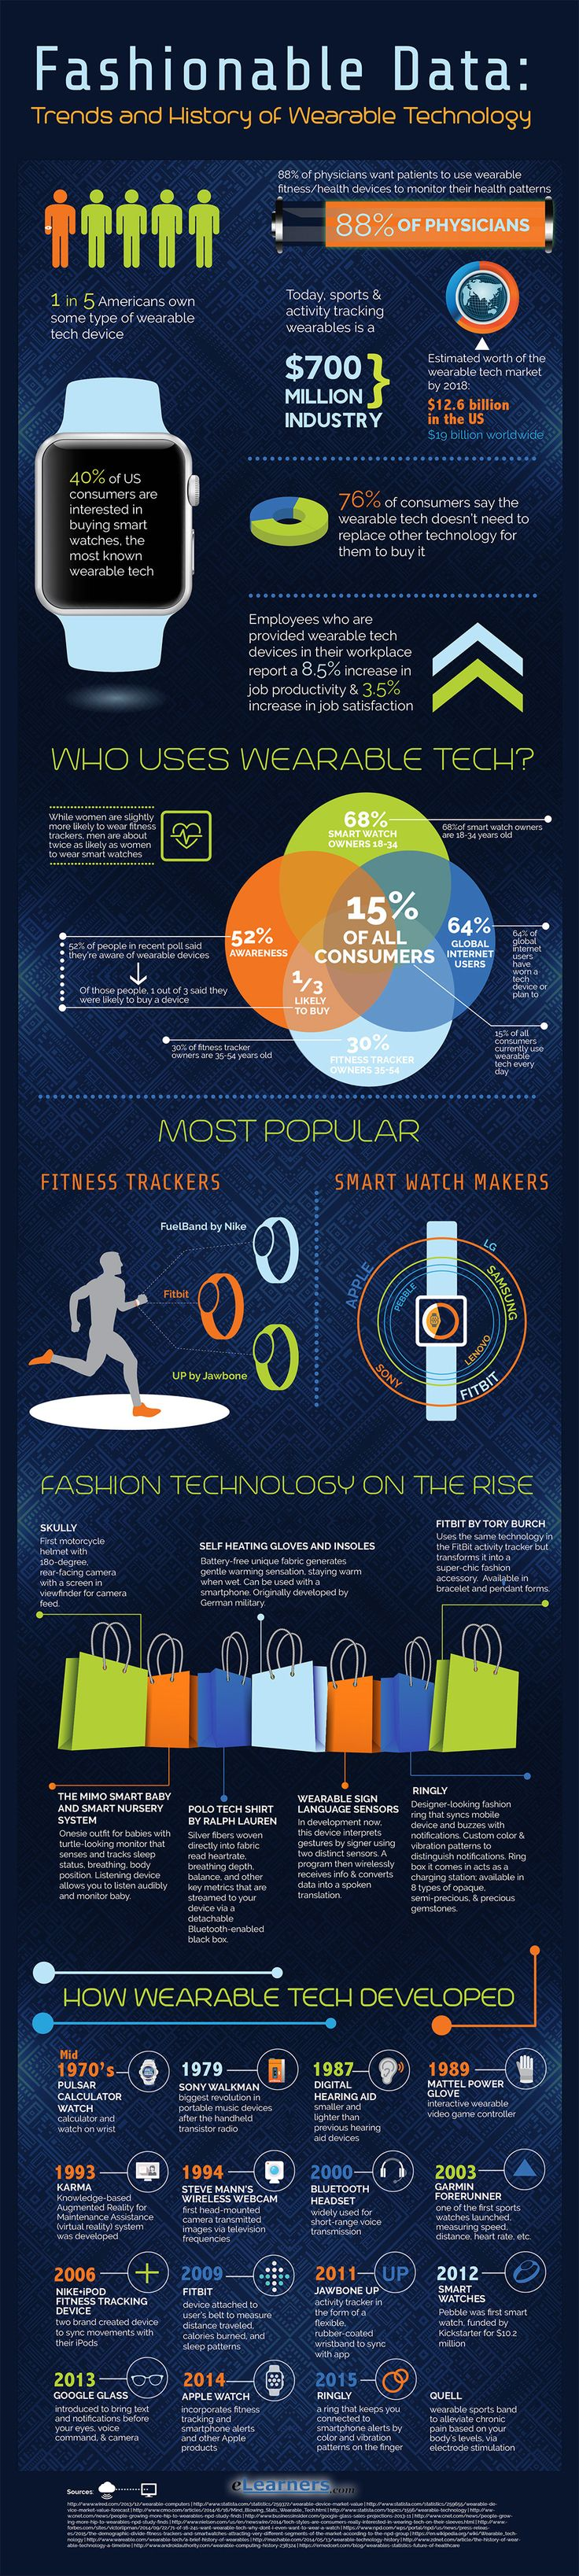 Trends and history of wearable technologysellabiz1@gmail.com